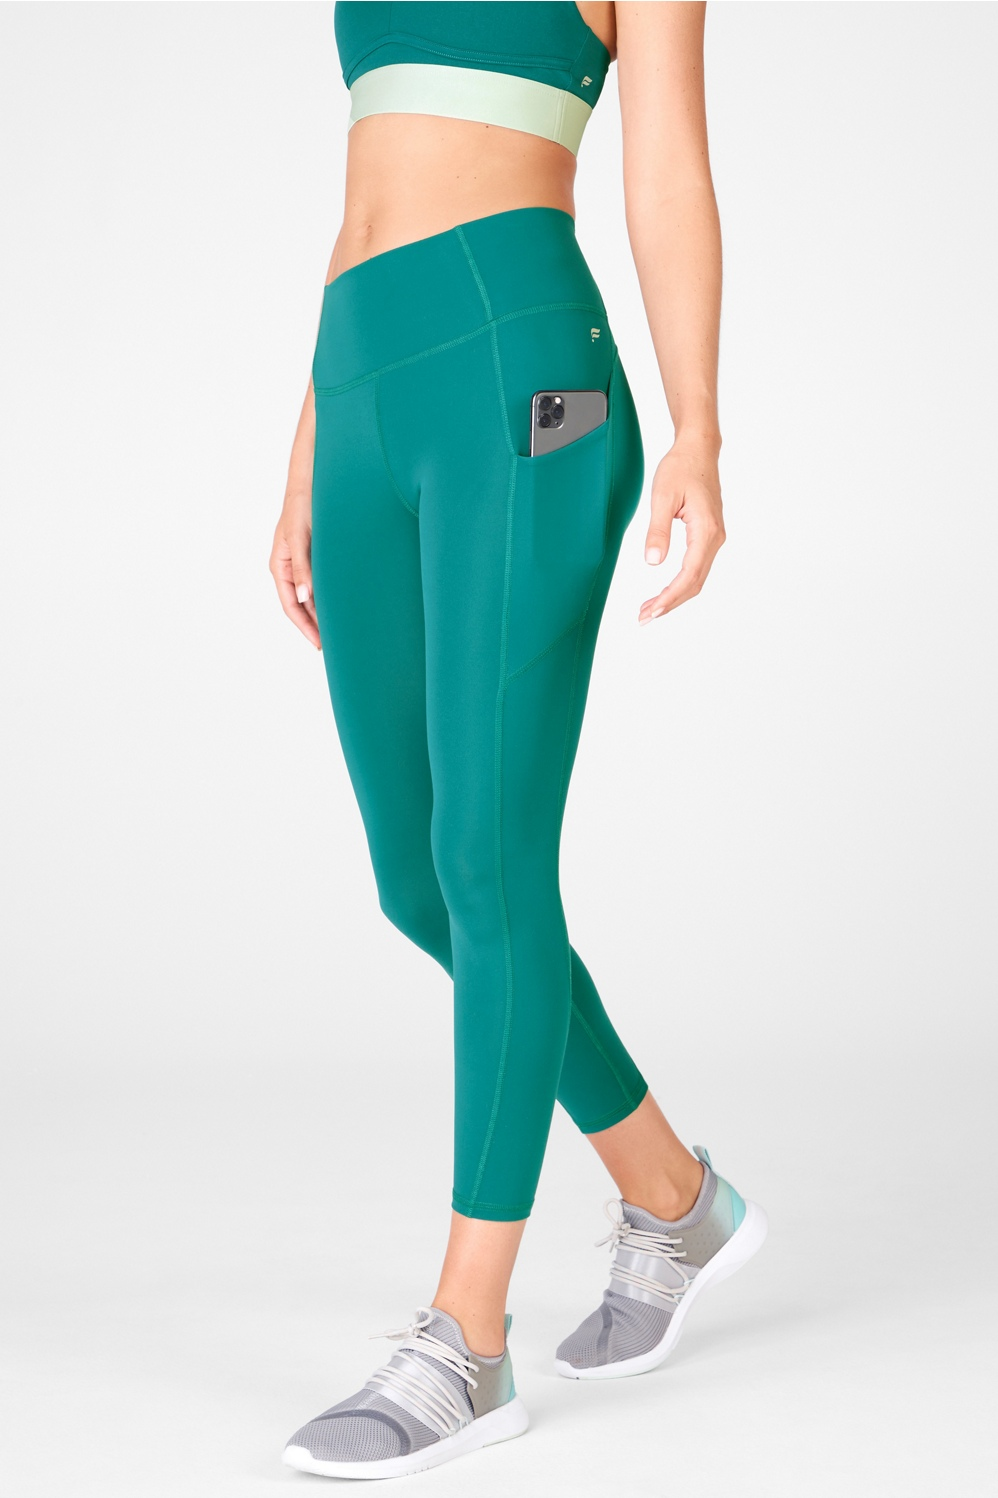 Fabletics leggings best women's activewear brands